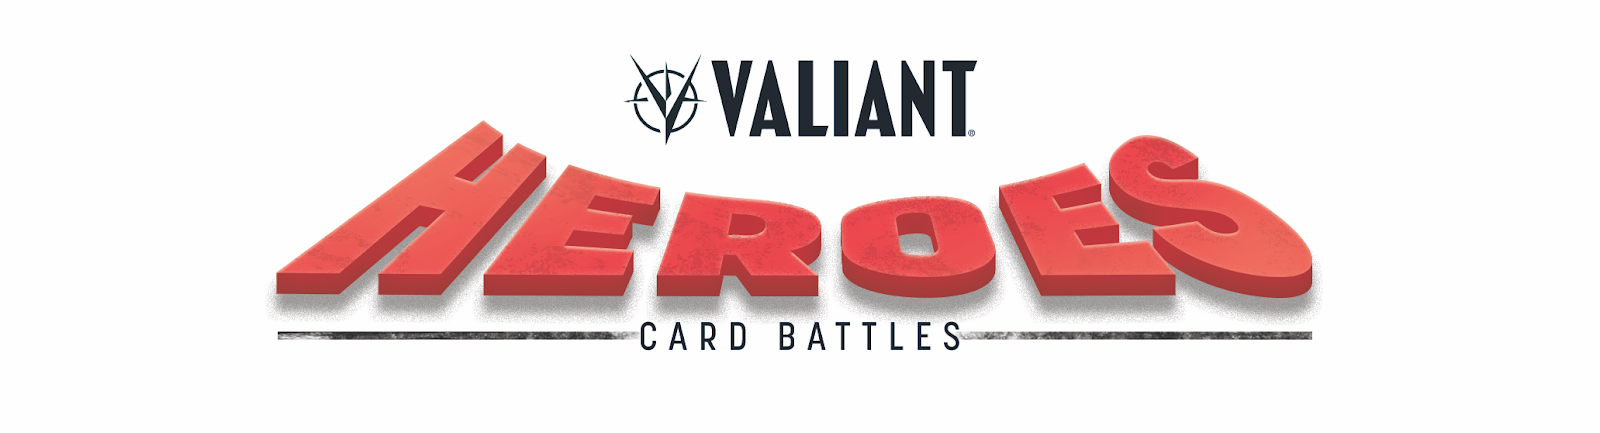 Valiant - Heroes Card Battles